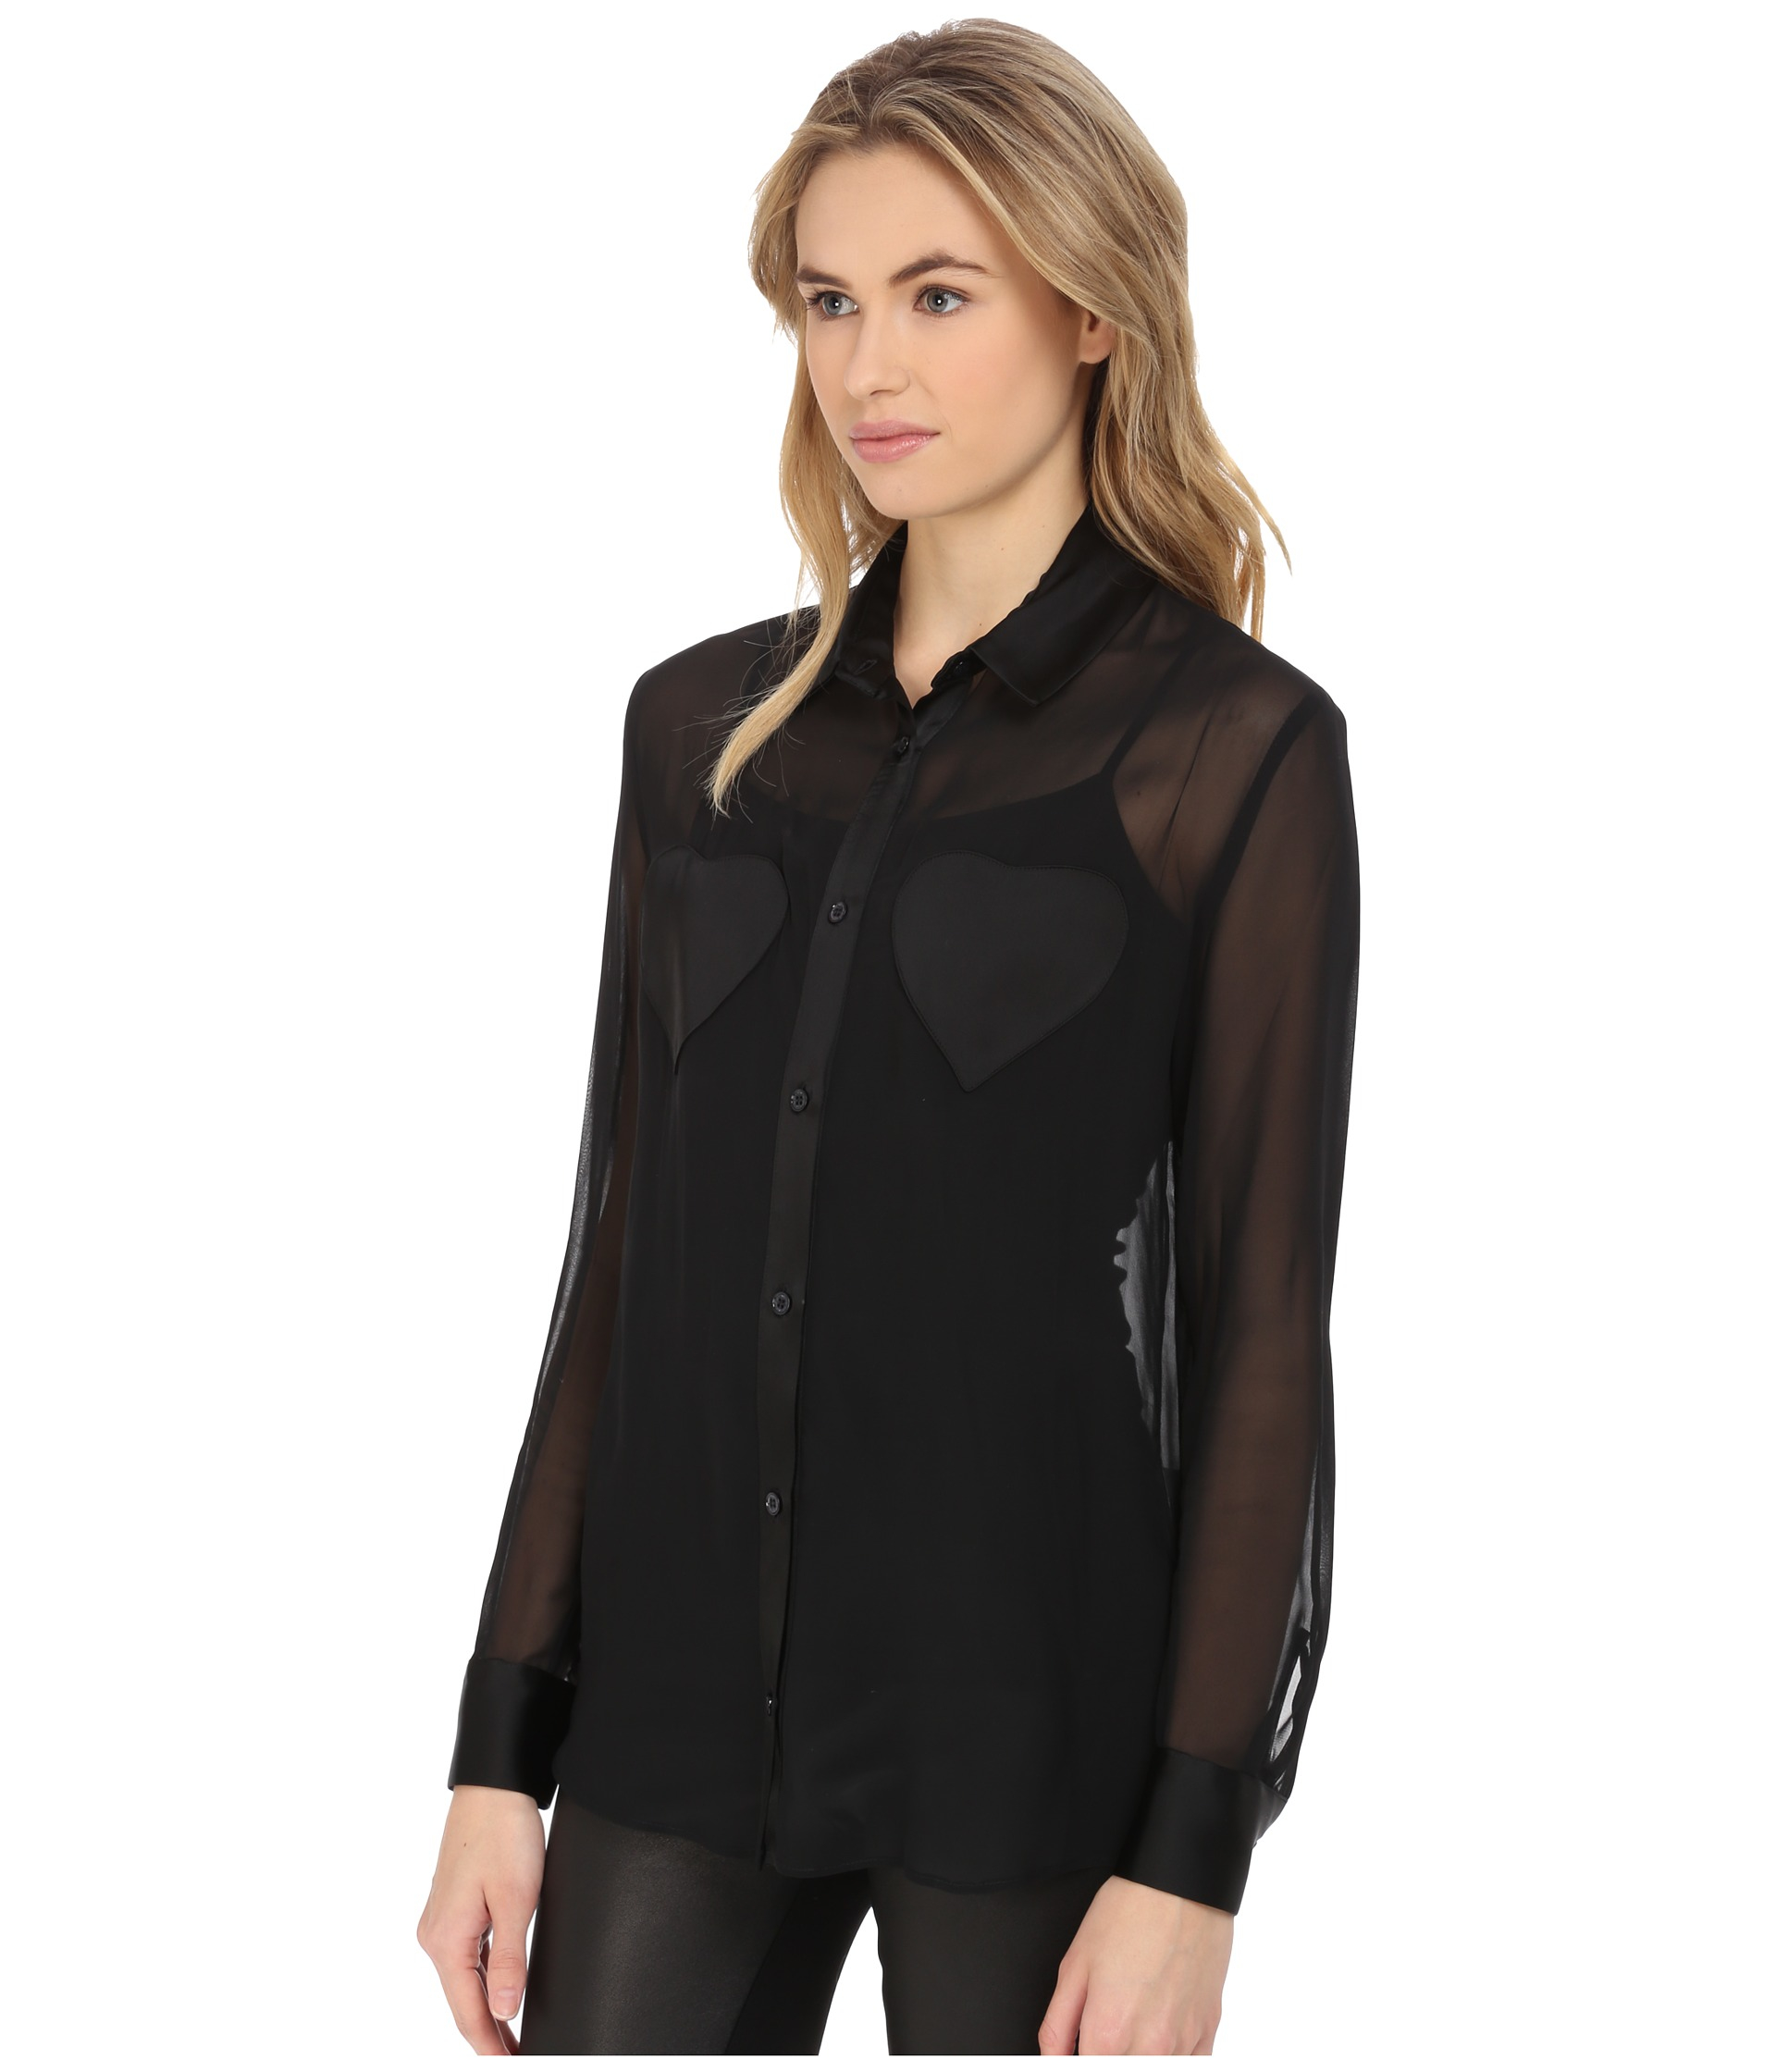 Find great deals on eBay for long sleeve dress sheer. Shop with confidence. Skip to main content. eBay: Lafayette Size 6 Dress Black Beige Sheer Bodice Long Sleeve NWT $ MSRP See more like this. Gently Worn! TRINA TURK Multi-Color Sheer Stretchy Long Sleeve Dress SMALL.